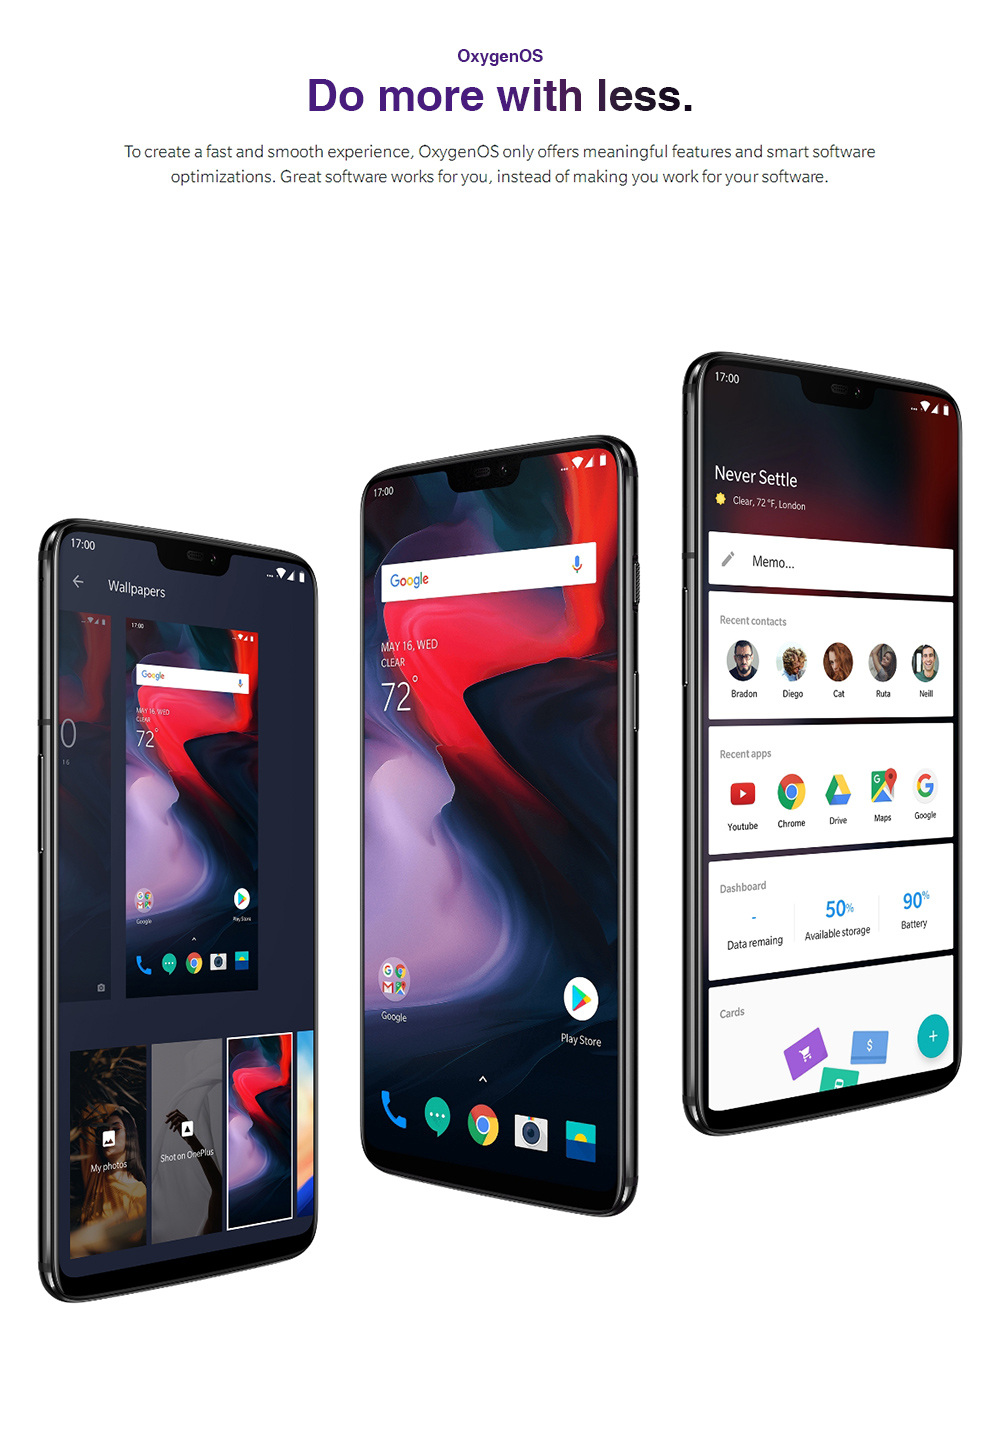 Smartphone Oneplus 6 6,28  - zrcalo crno - image Oneplus-6-6-28-Inch-8GB-256GB-Smartphone-Midnight-Black-20180517140347958 on https://smartmall.hr